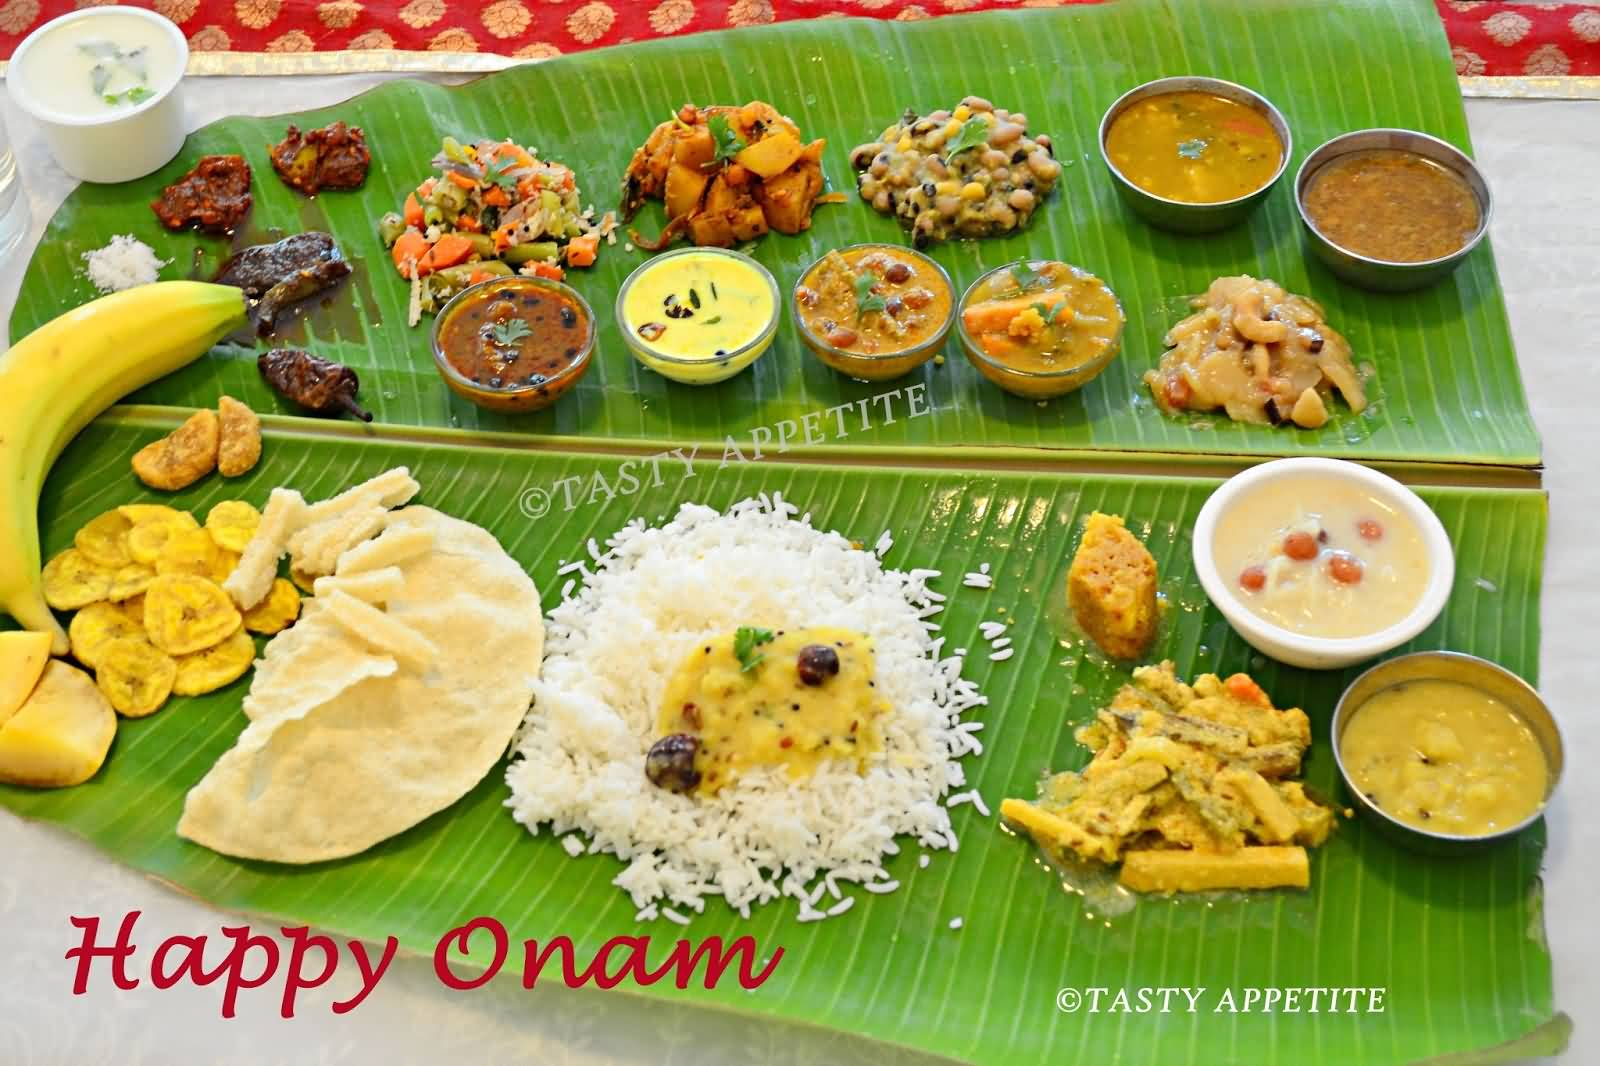 50 very beautiful happy onam wish pictures and images happy onam traditional food picture kristyandbryce Image collections